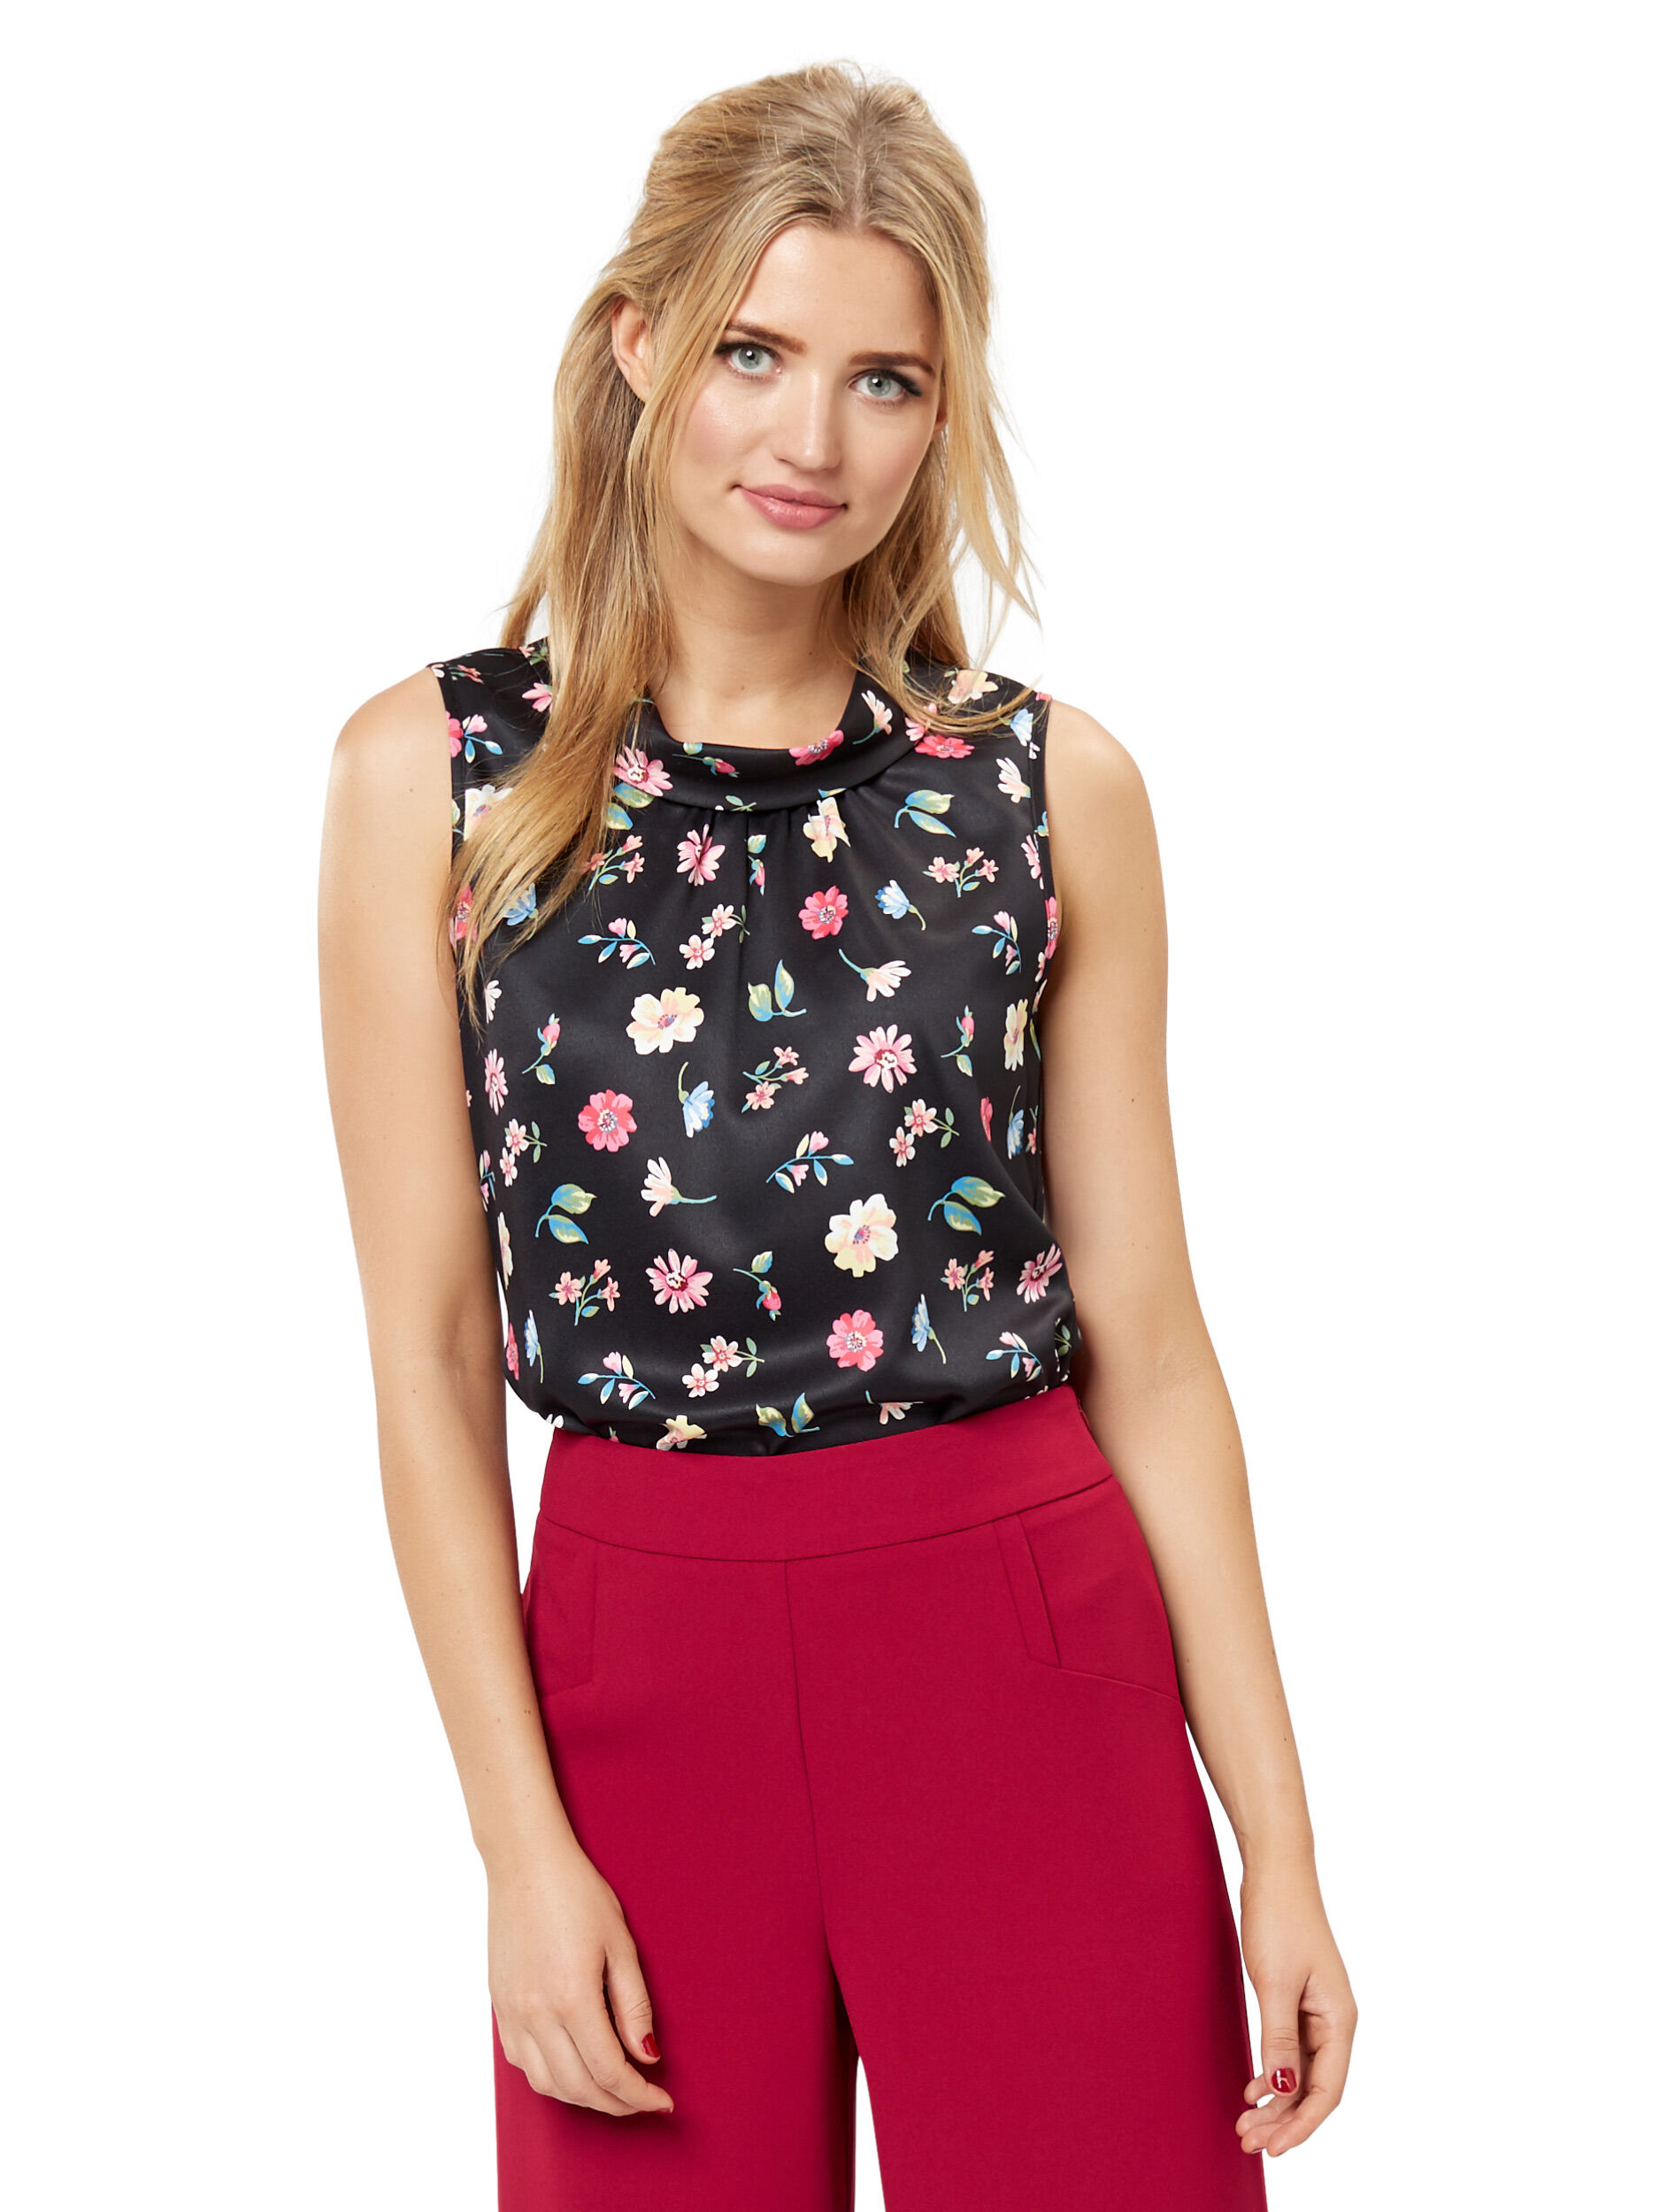 Floral Rush Top